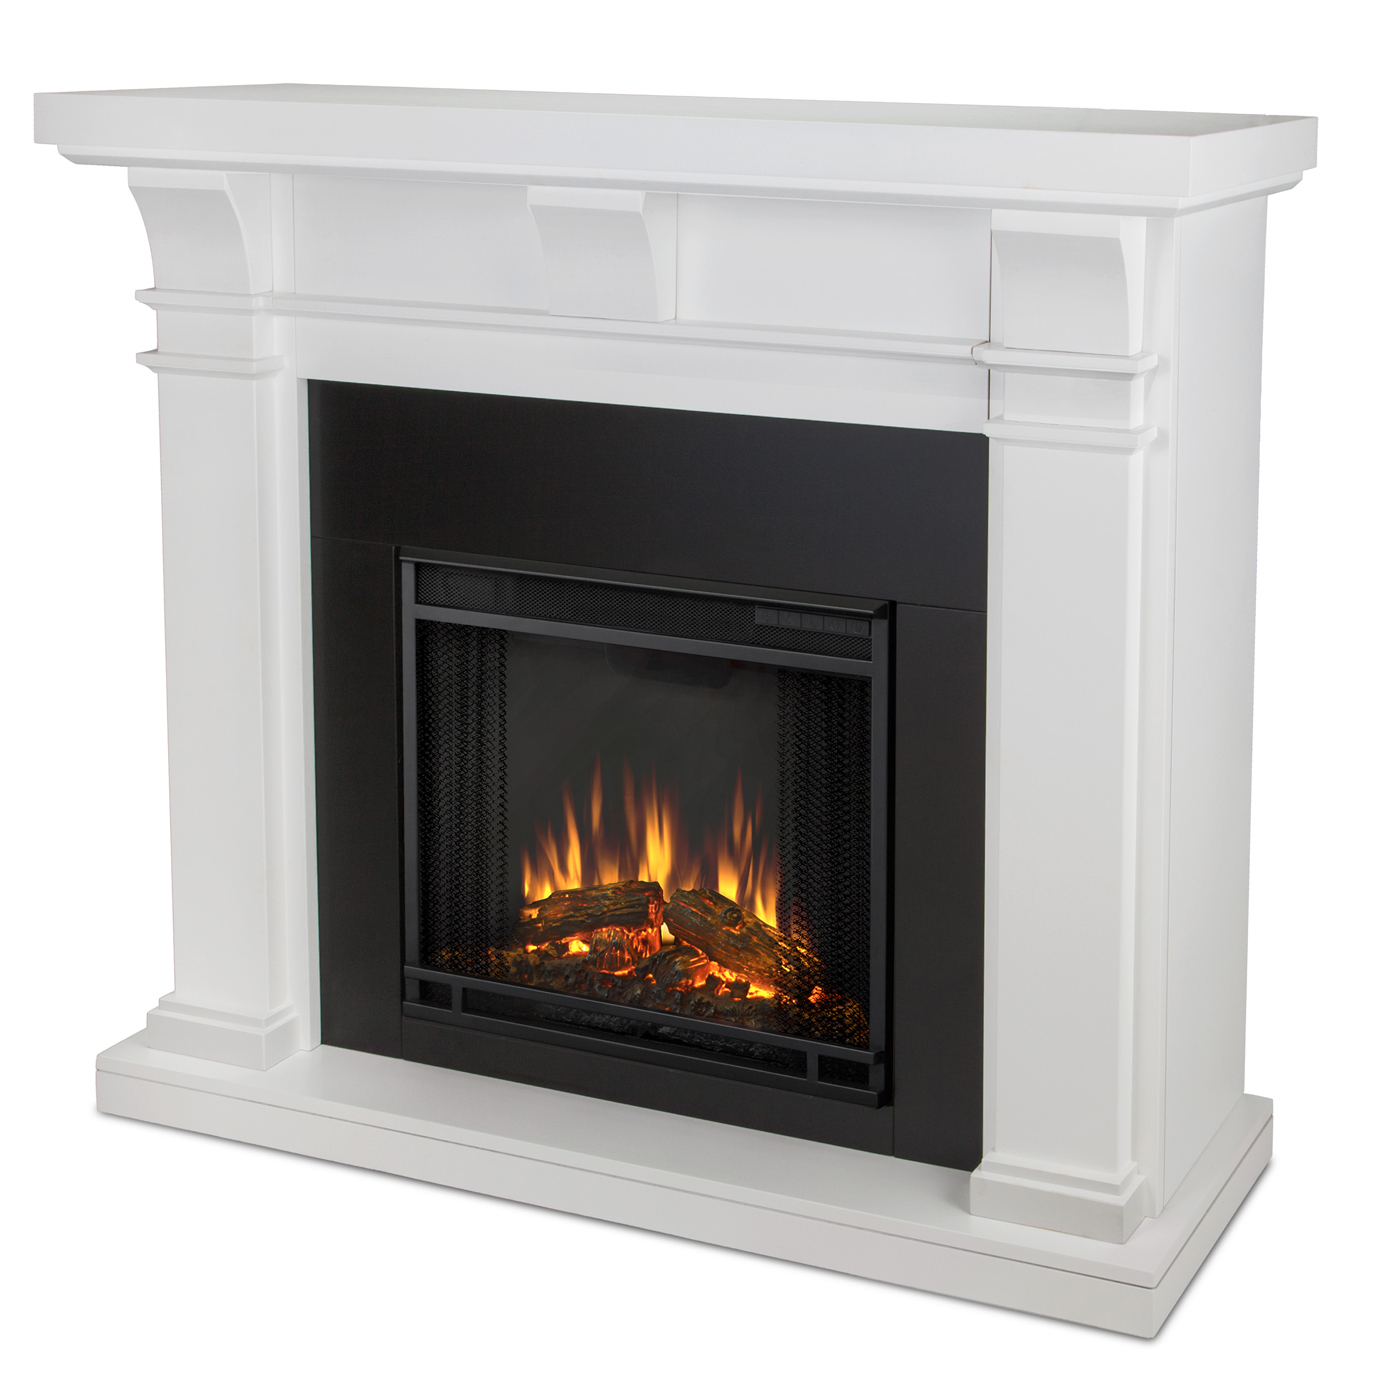 Real Flame Porter Electric Fireplace - White